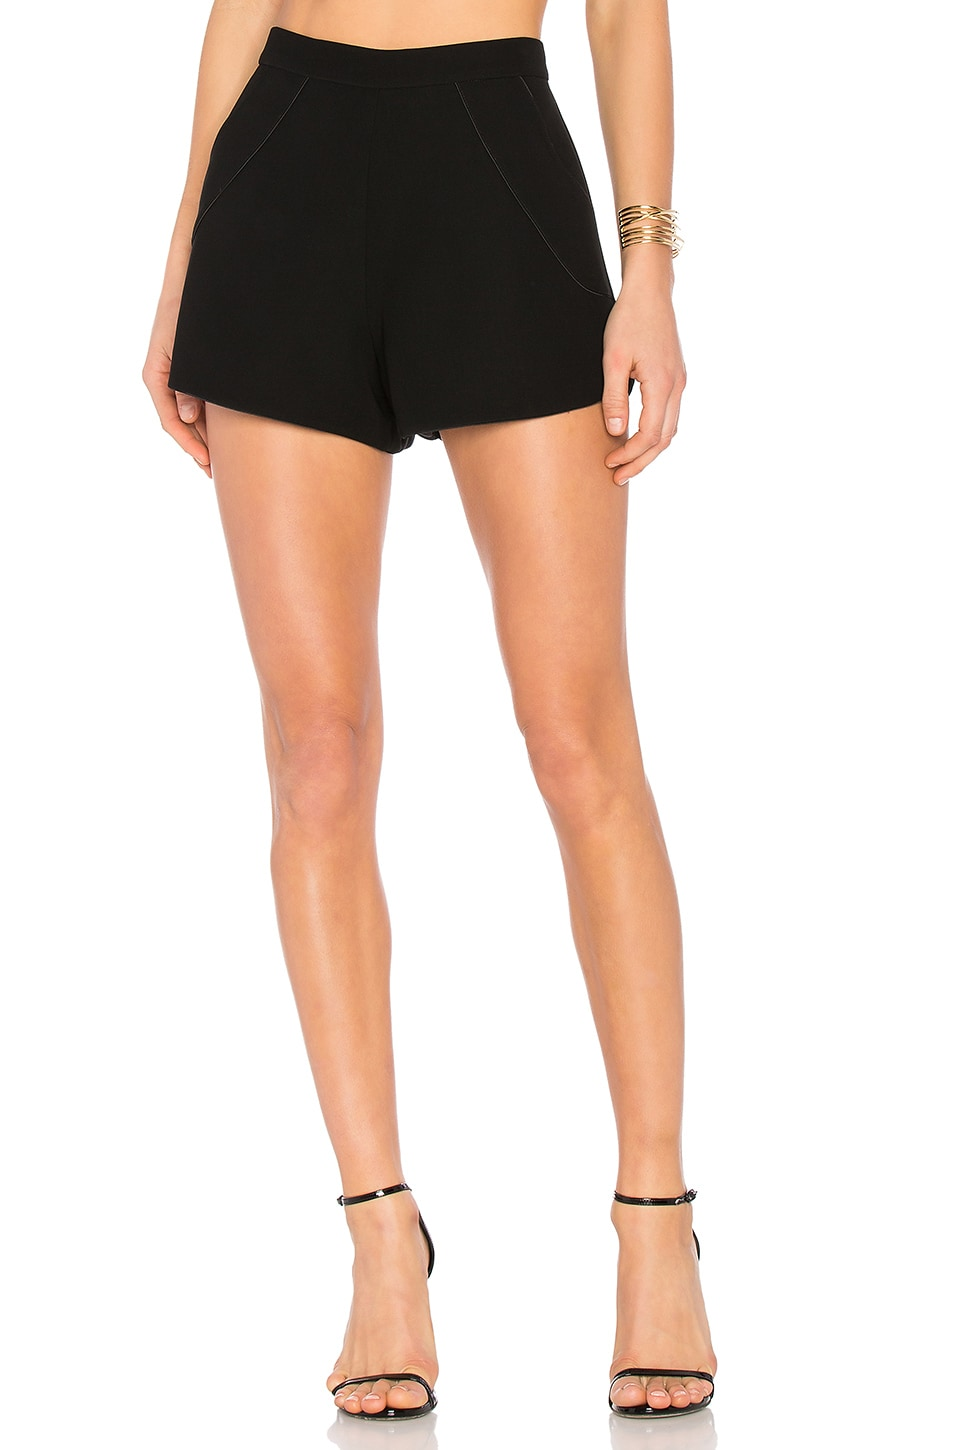 Alexis Vince Shorts in Black